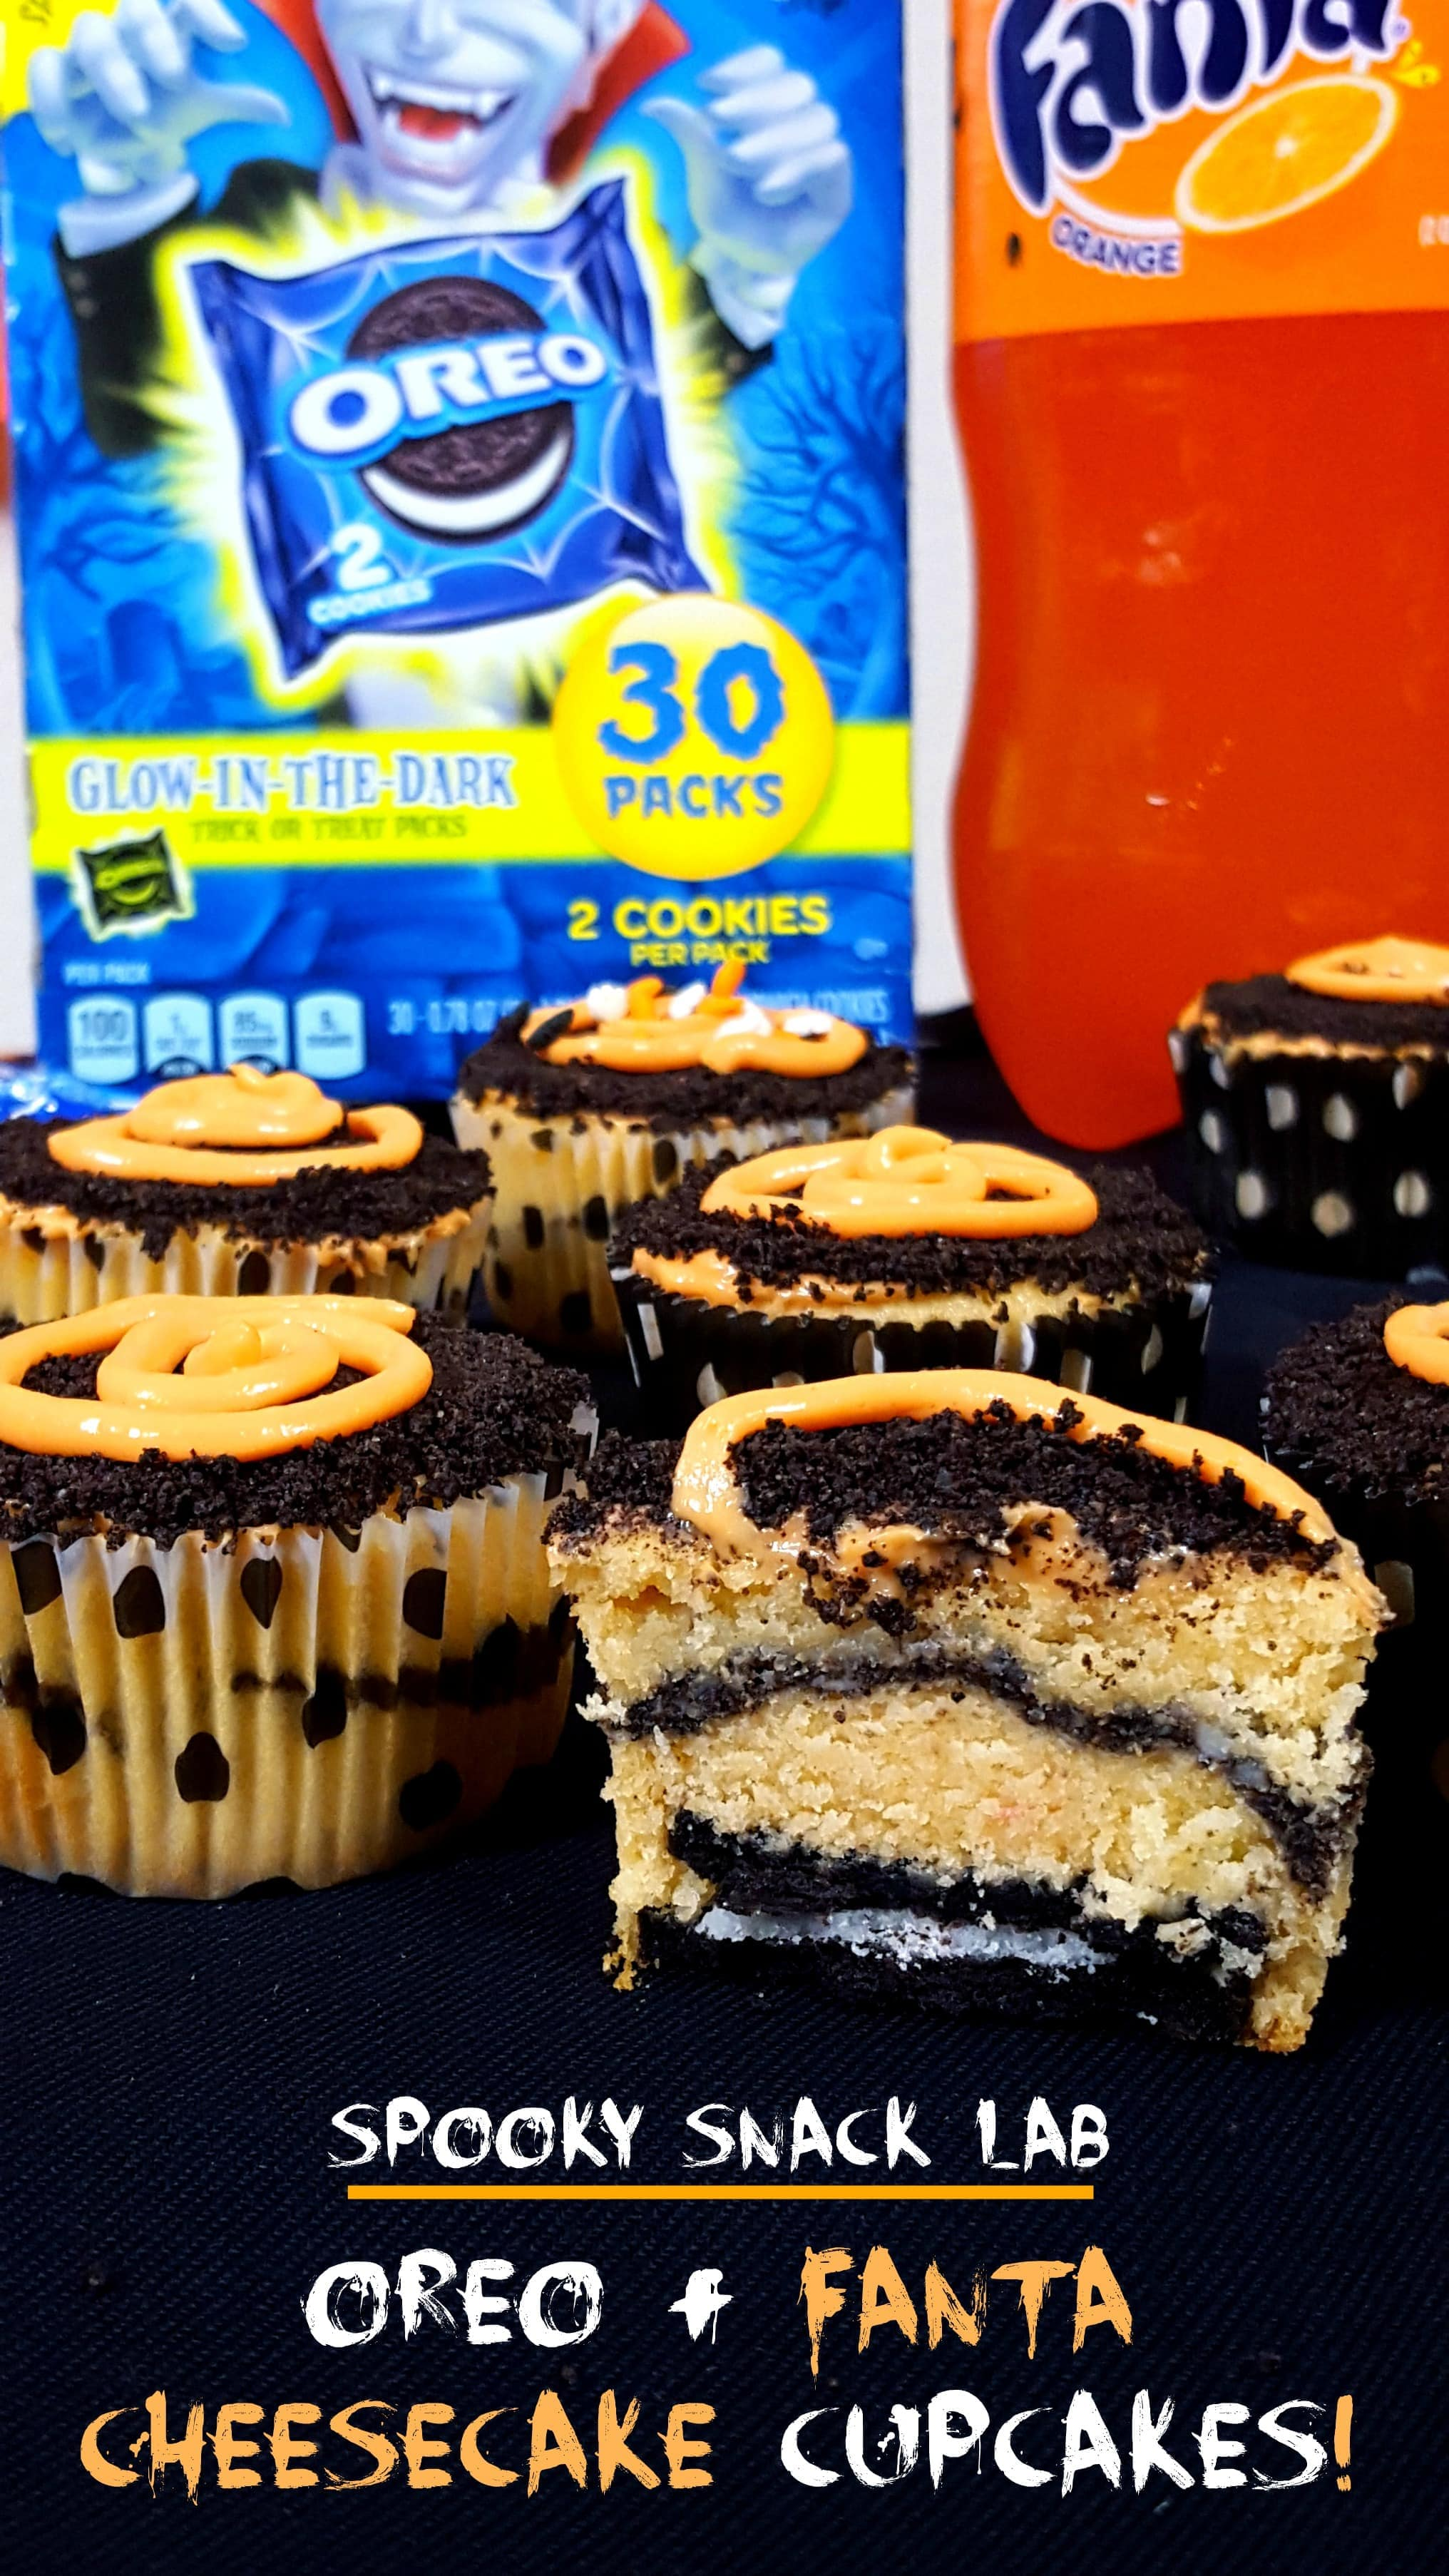 OREO and Fanta Halloween Cheesecake Cupcakes